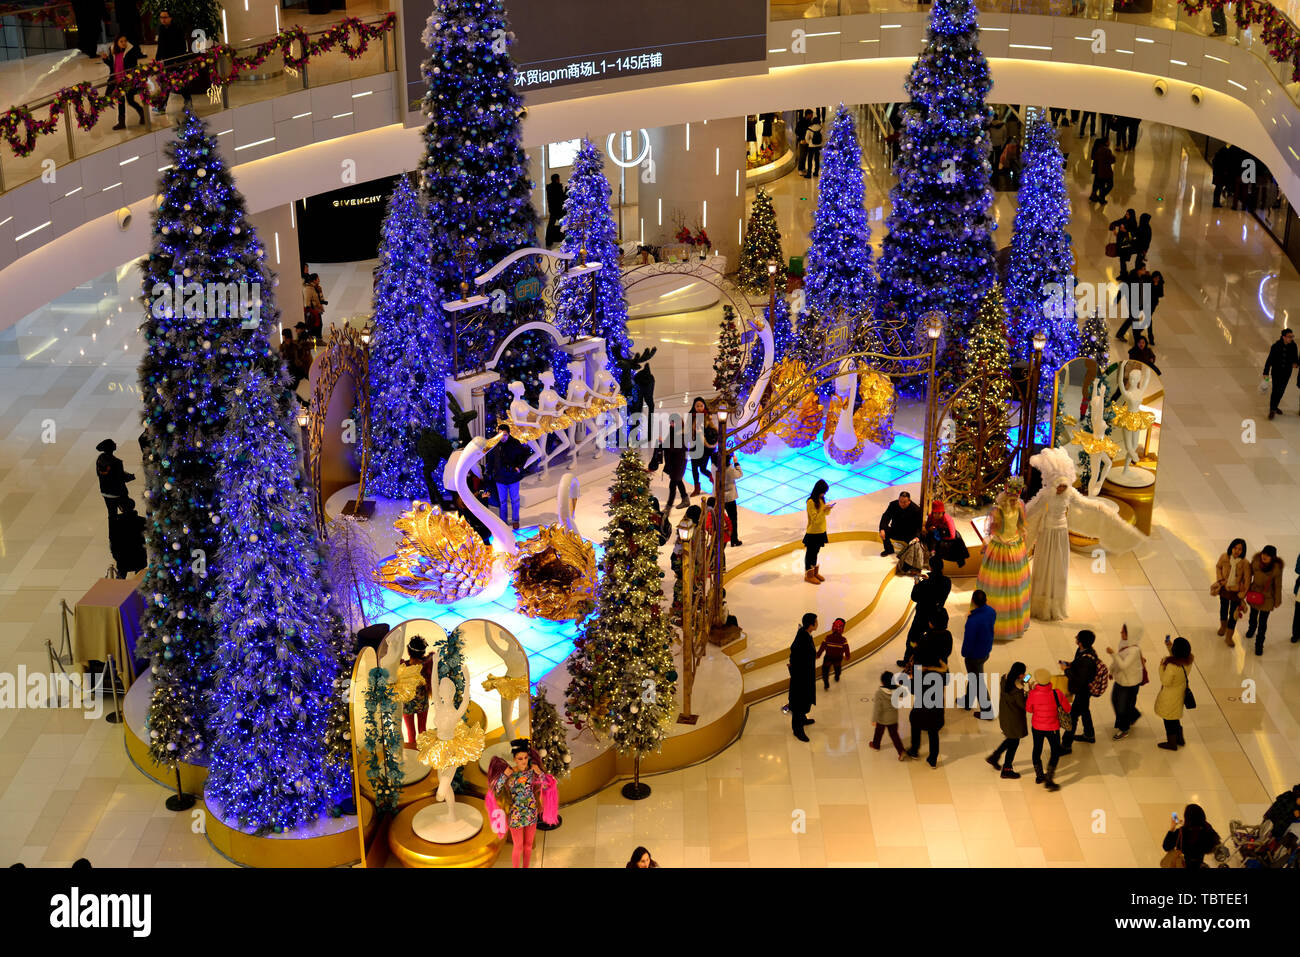 Christmas Decorations In The Central Hall Of The Large Mall